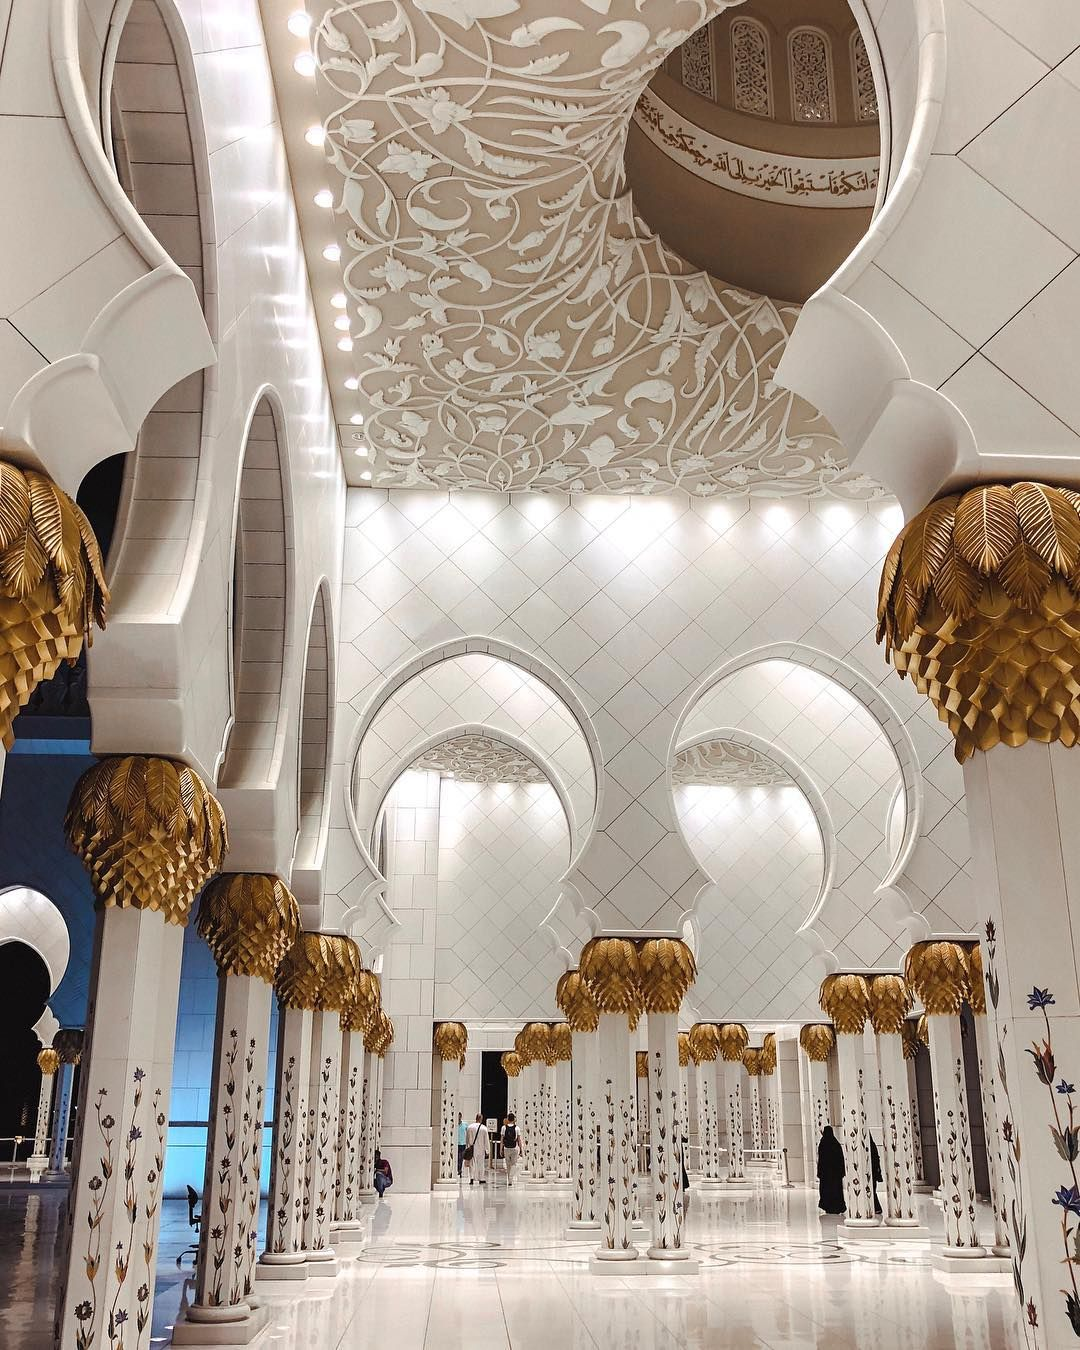 Exploring The Sheikh Zayed Mosque In Abu Dhabi